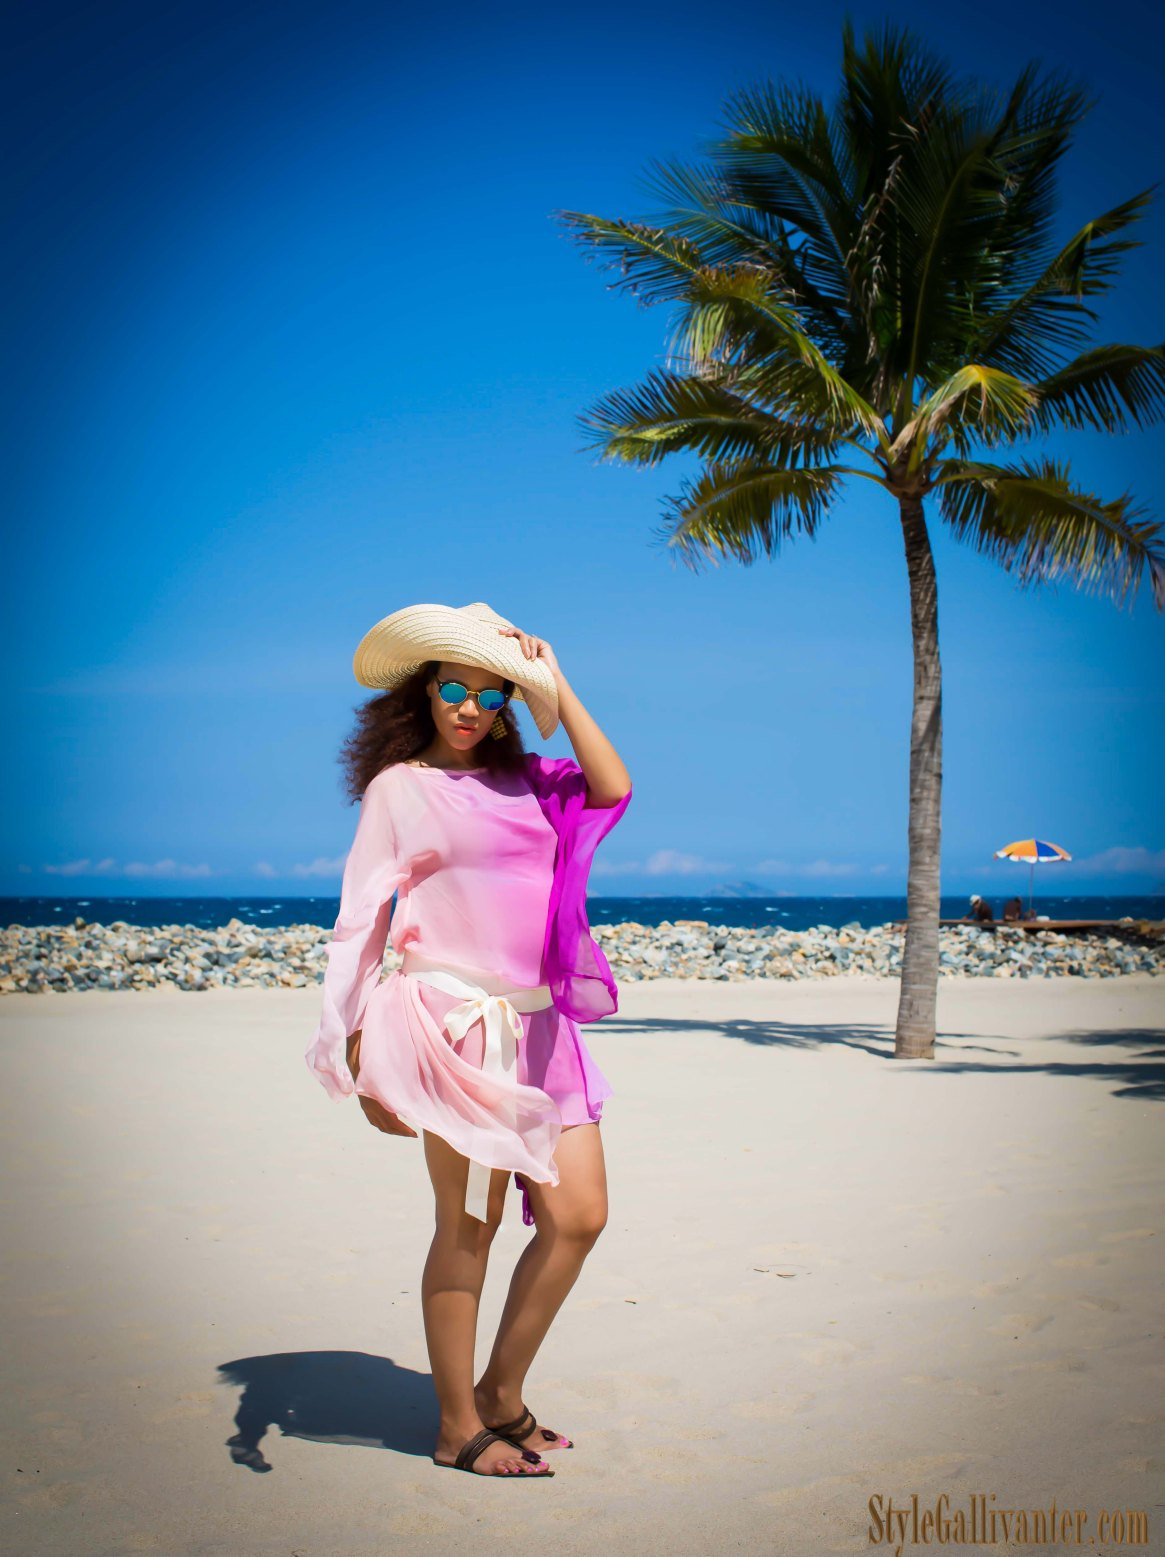 maternity-resort-collections_beachwear-for-pregnancy_beautiful-pregnant-beach-styles_top-black-fashion-magazines_top-fashion-style-blogs-botswana-africa_most-beautiful-holiday-destinations-2014_top-10-holiday-destions-2014-2015_top-travel-bloggers-melbourne-australia_best-destination-bloggers-australia_leiela-art-du-jour-2014-16